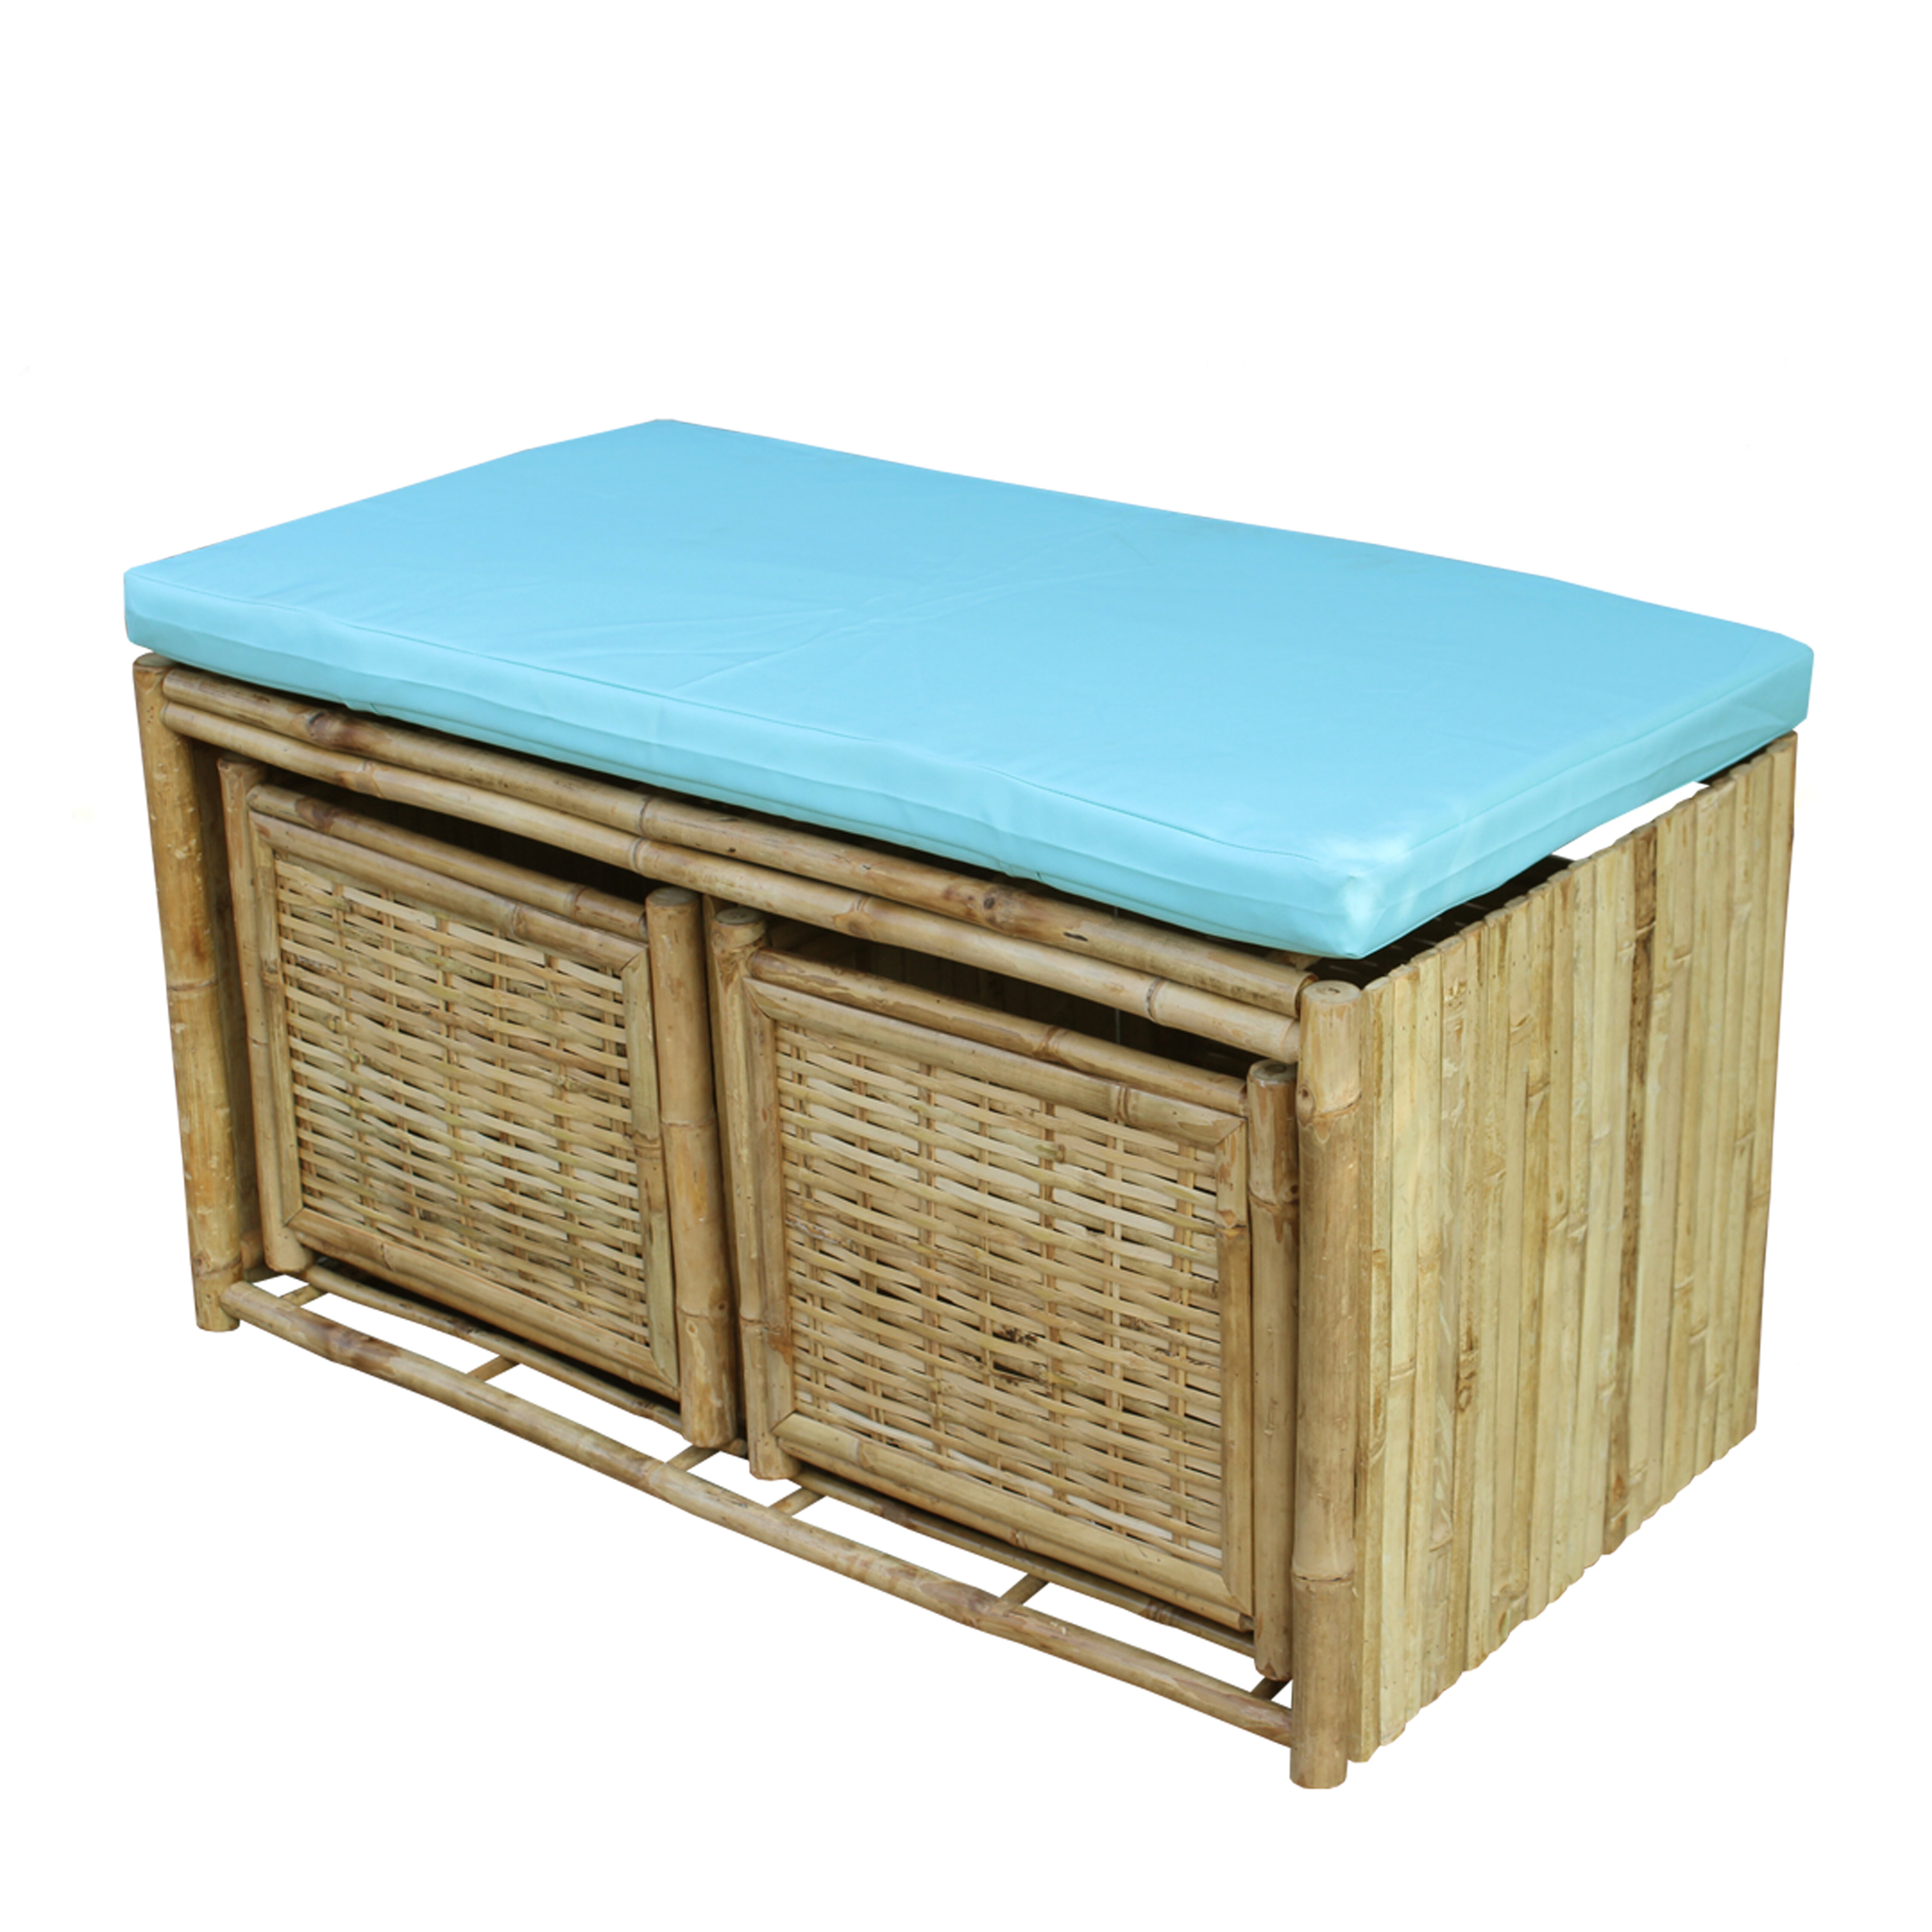 Awesome Wood Storage Bench Caraccident5 Cool Chair Designs And Ideas Caraccident5Info